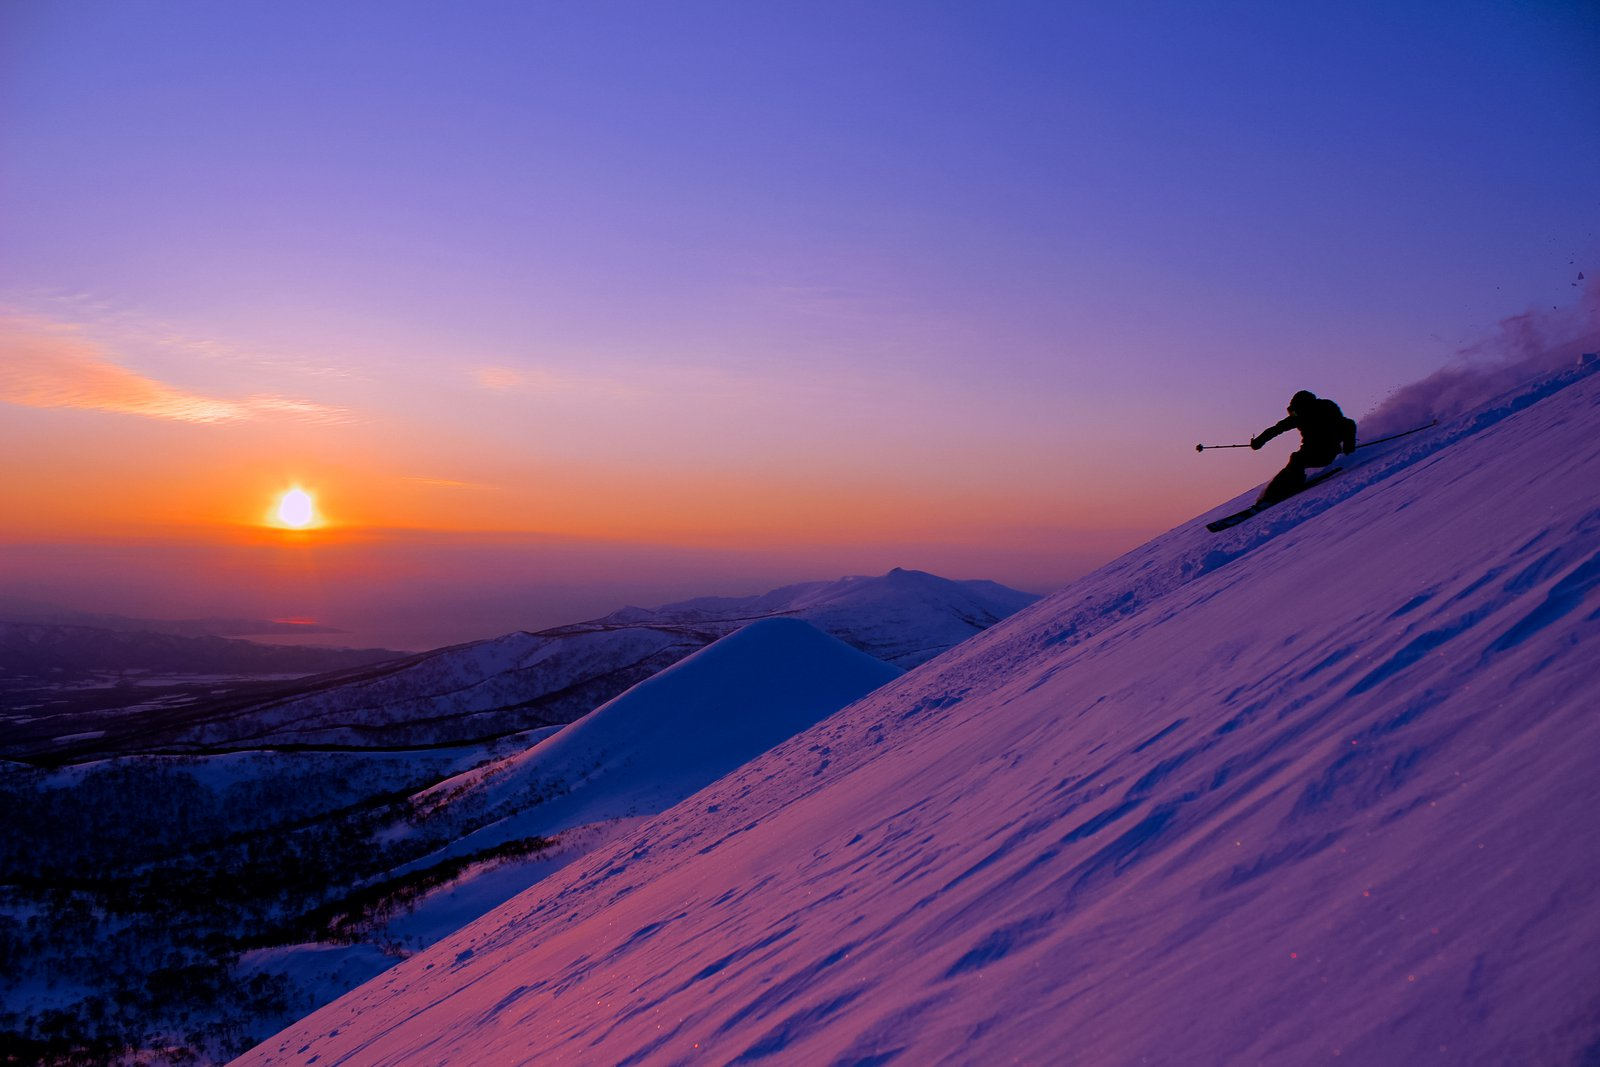 Niseko sunset riding